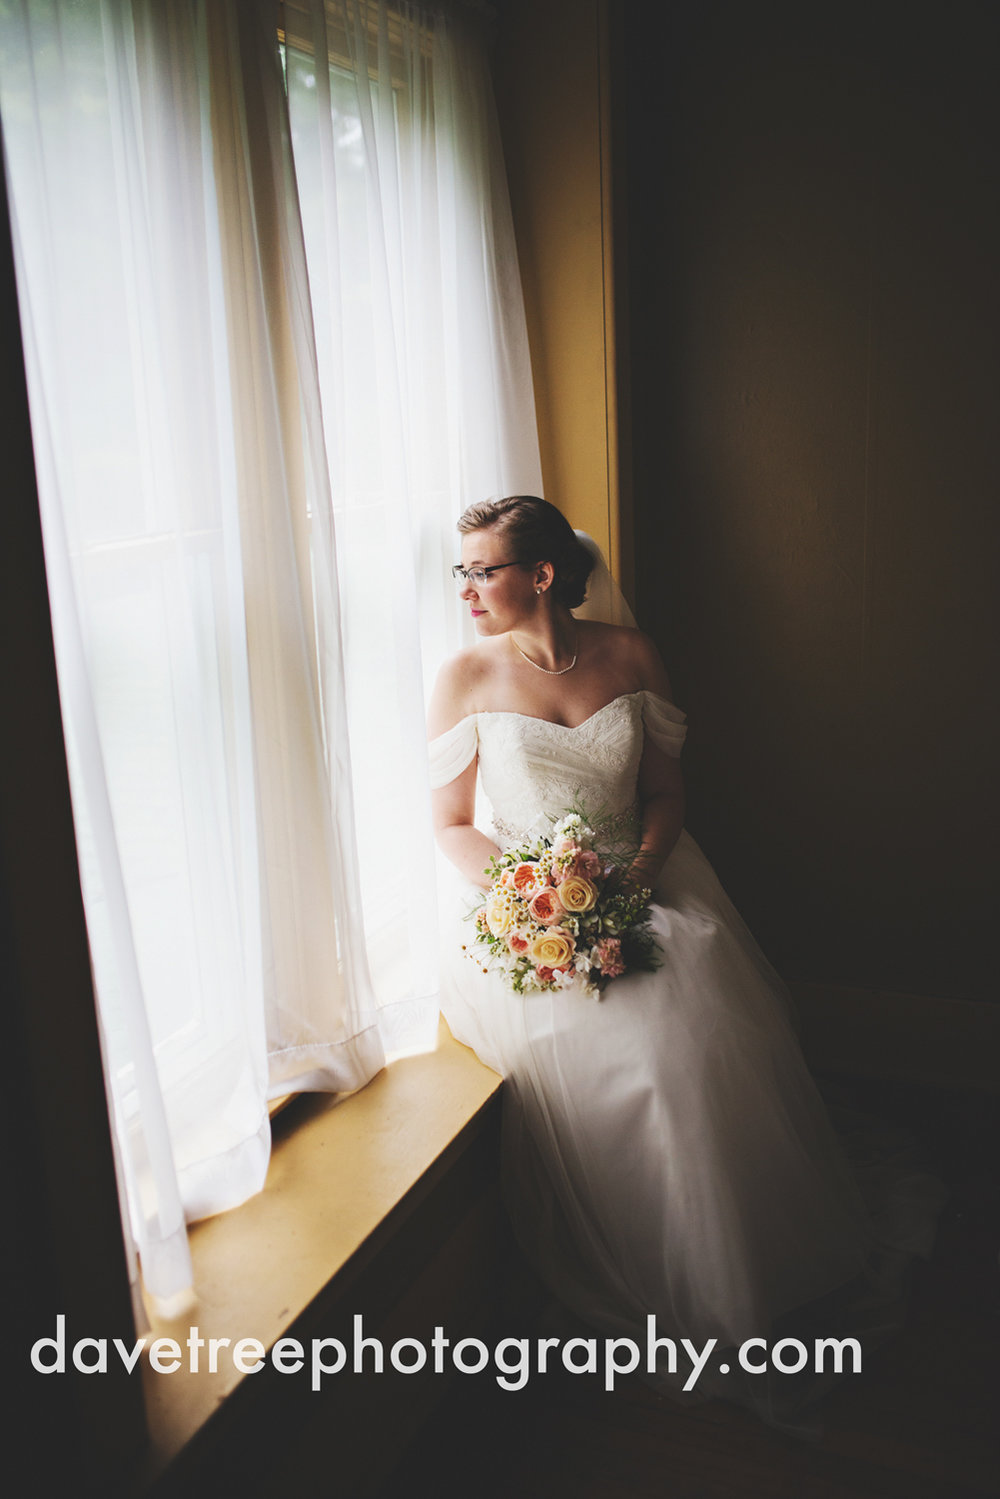 grand_haven_wedding_photographer_weaver_house_wedding_10.jpg